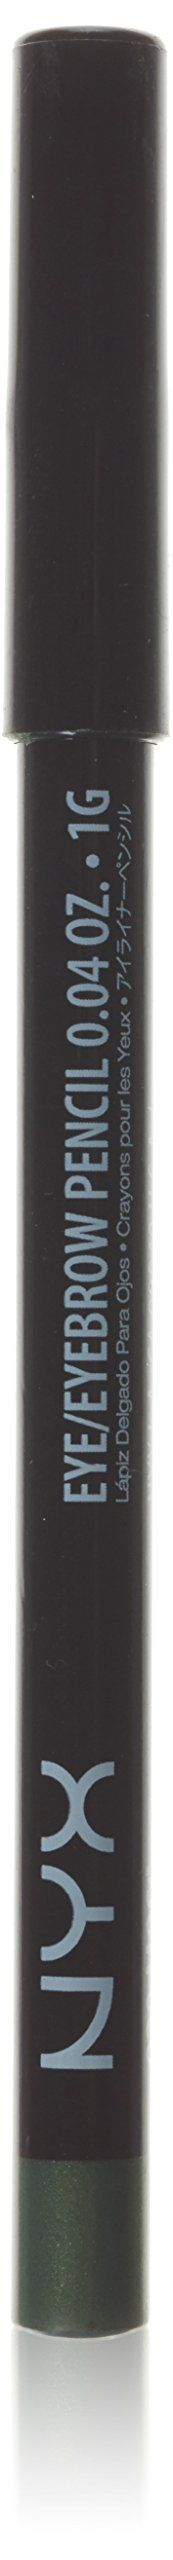 NYX Slim Eye Liner Pencil 929 Moss. NYX Cosmetics, Beauty Products, Cosmetic Products, For Lips and Eyes and Face.